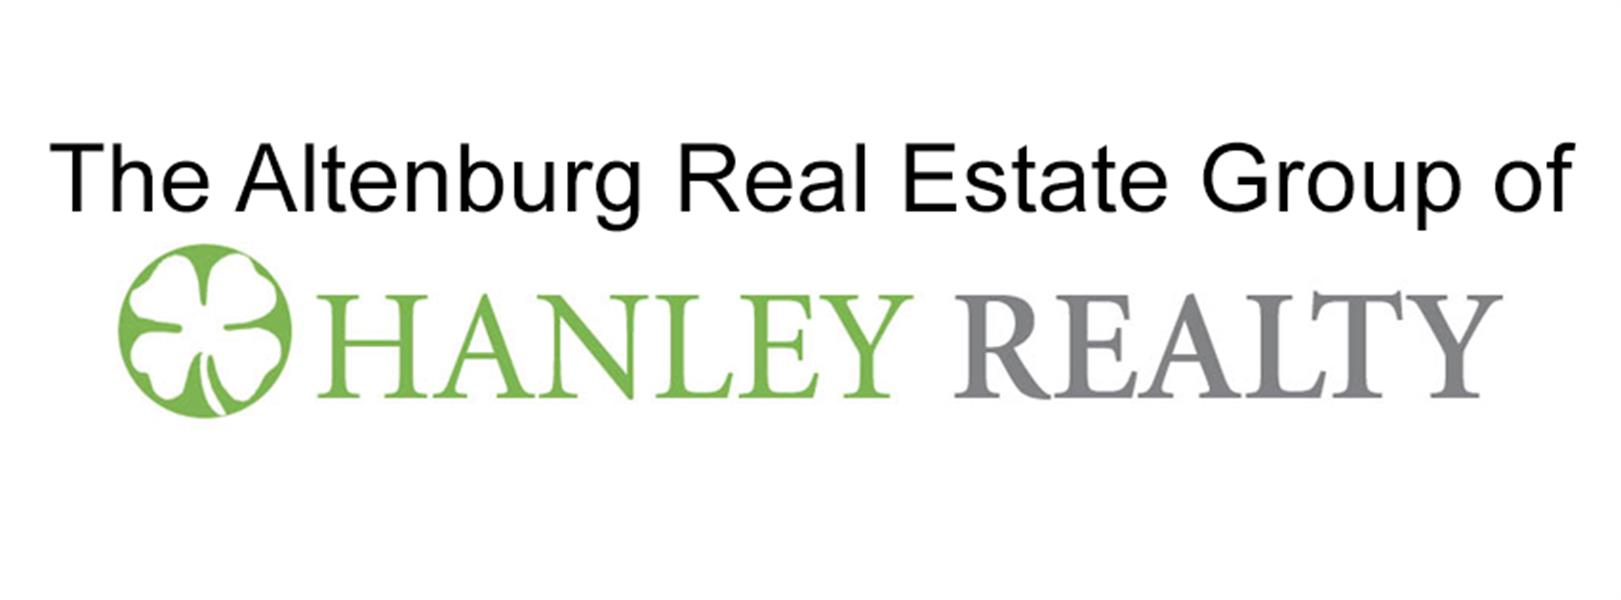 The Altenburg Real Estate Group of Harley Realty